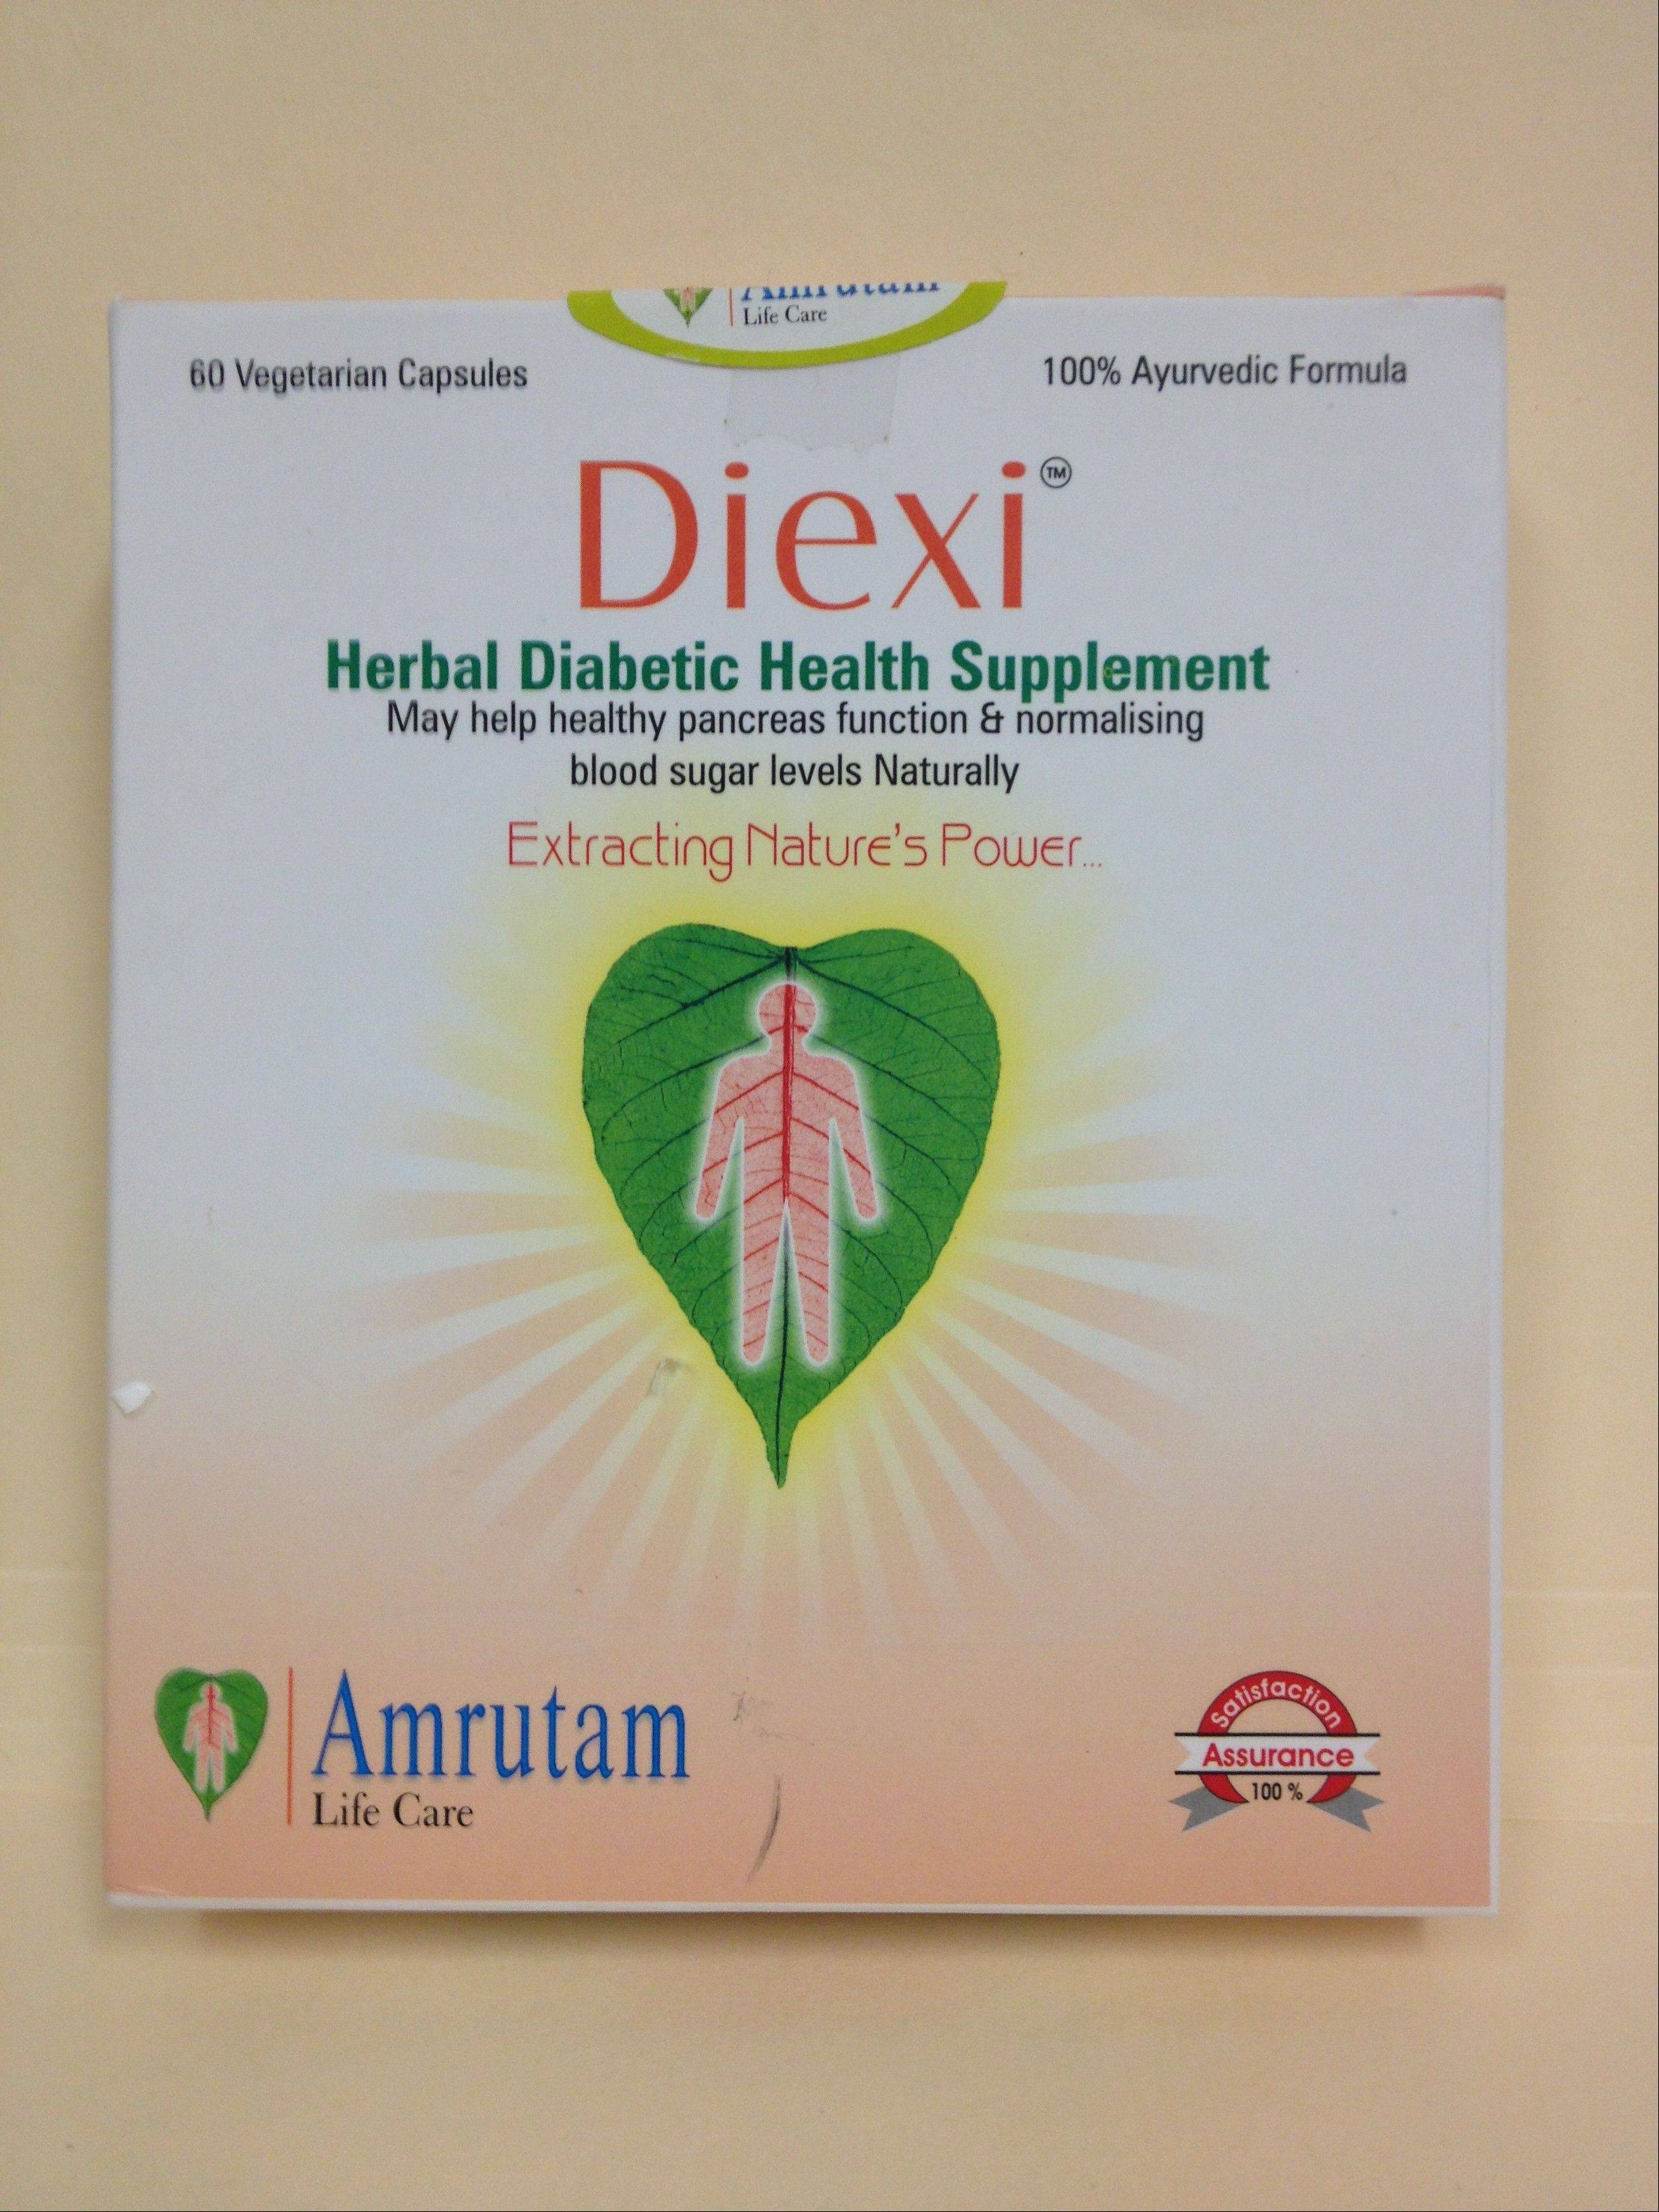 This undated photo provided by The Food and Drug Administration (FDA) shows Diexi, which is sold as a traditional Indian �herbal formula,� which actually contains metformin, the most common prescription drug used to treat diabetes. The FDA sent warning letters to 15 companies, including Amrutam Life Care, ordering them to stop selling diabetes treatments such as Diexi which violate U.S. drug laws.